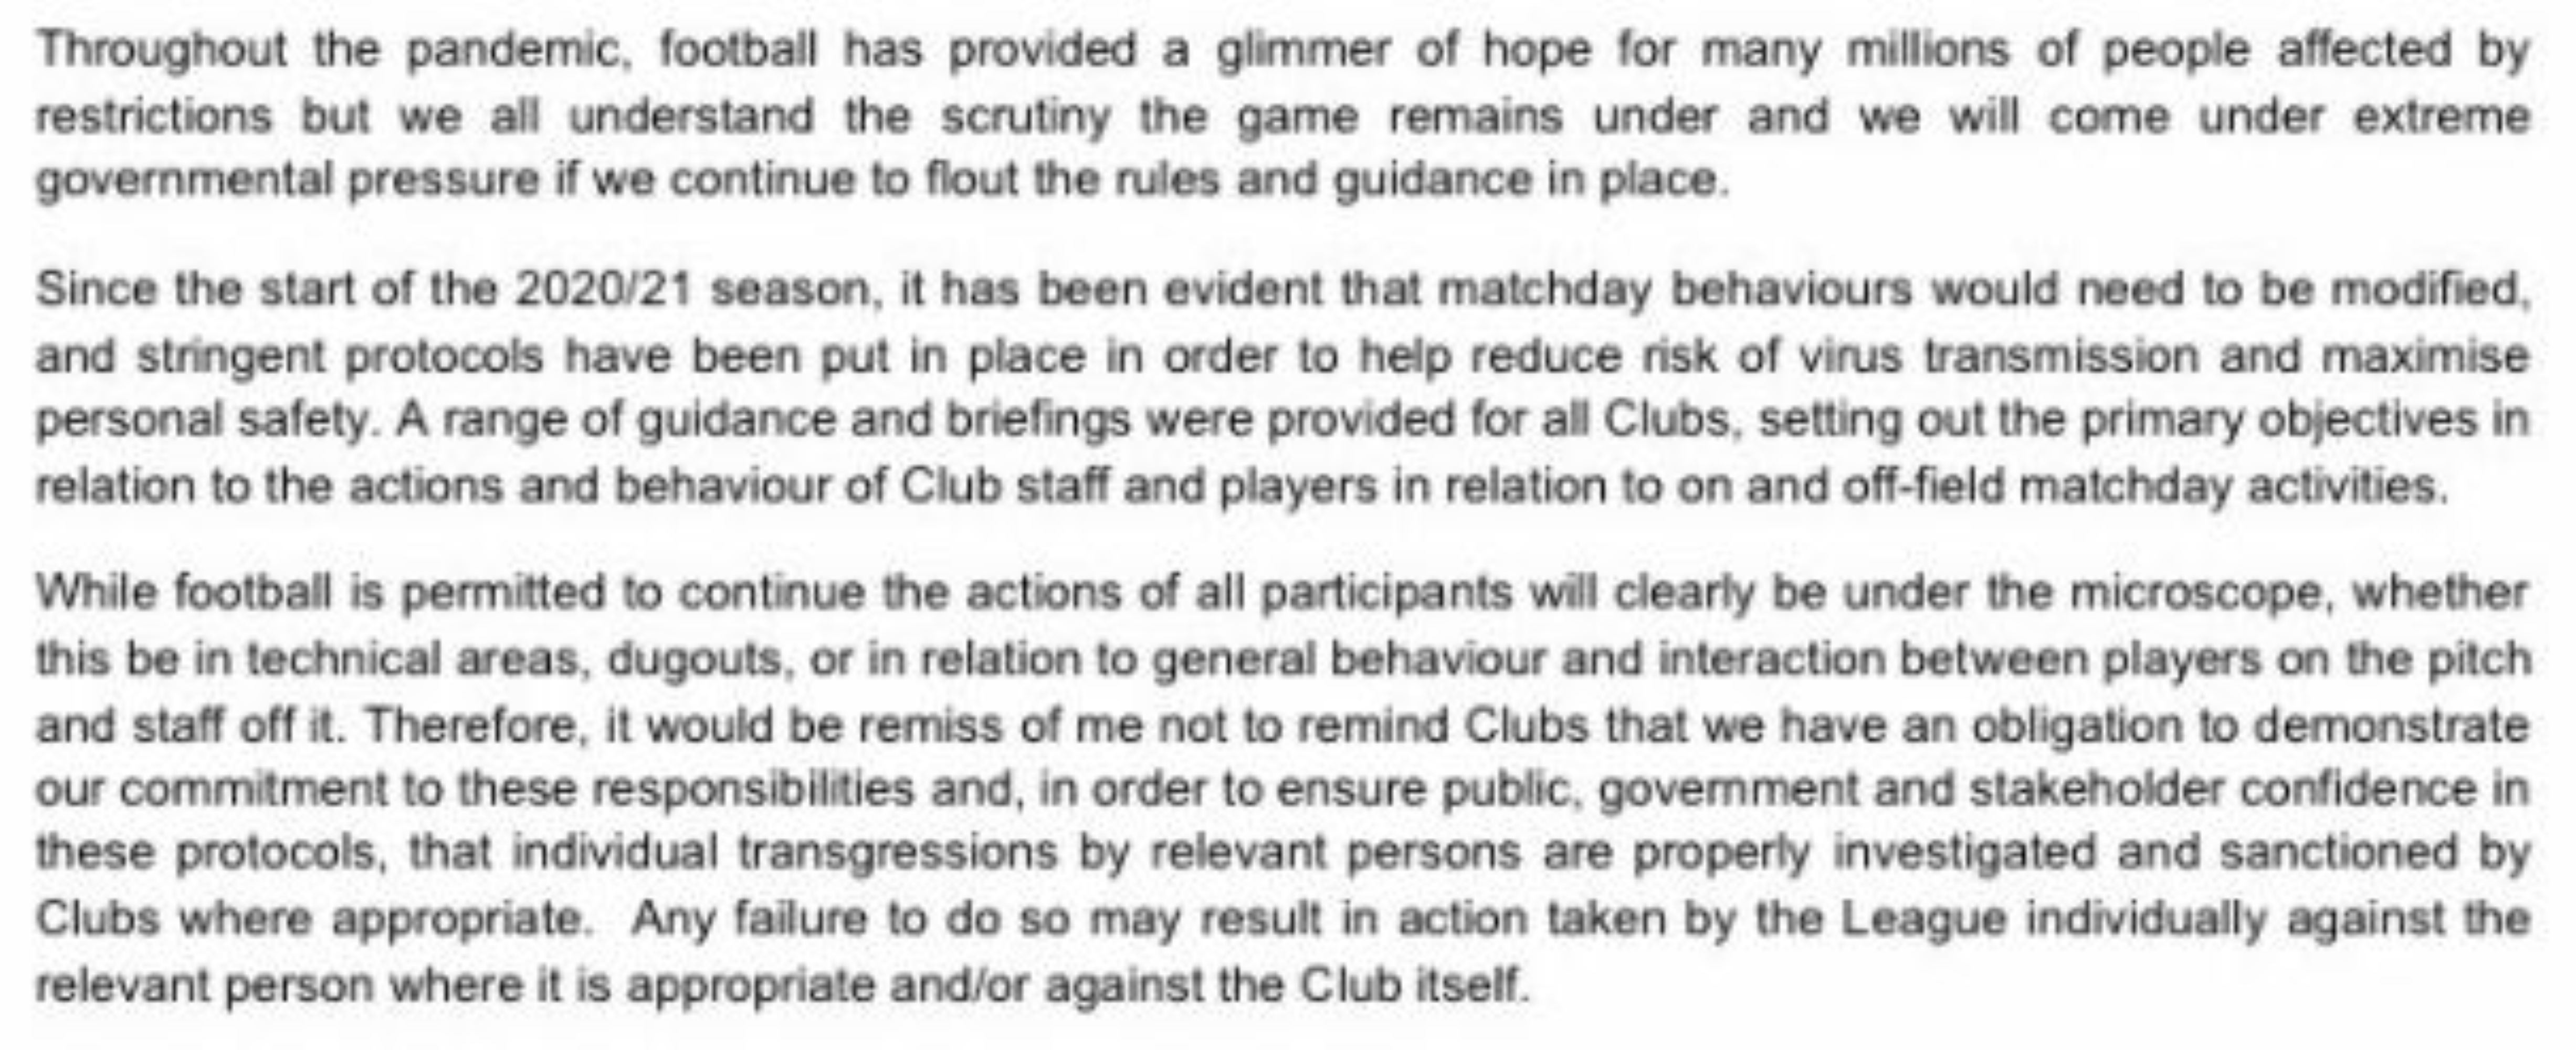 Extract from a letter sent by EFL chief executive Trevor Birch to league clubs